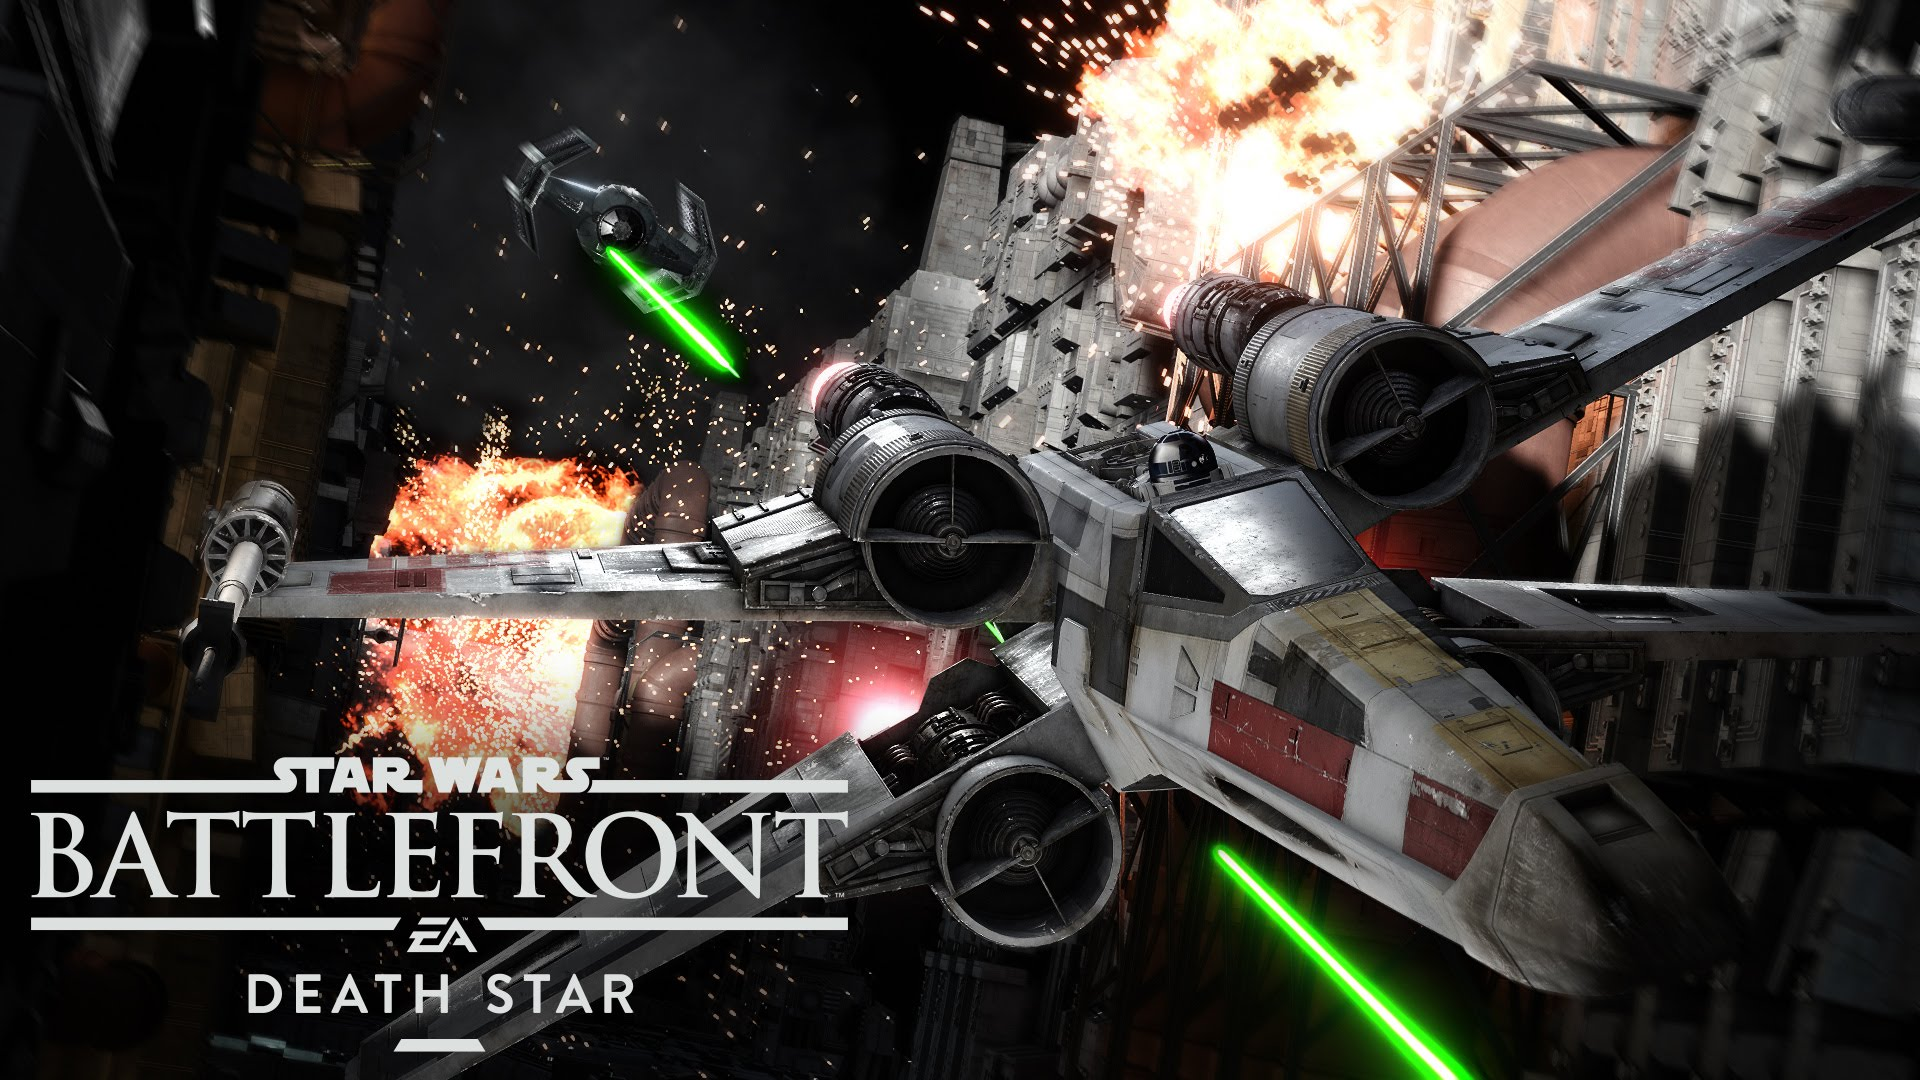 Star Wars Battlefront: Death Star Launch Trailer